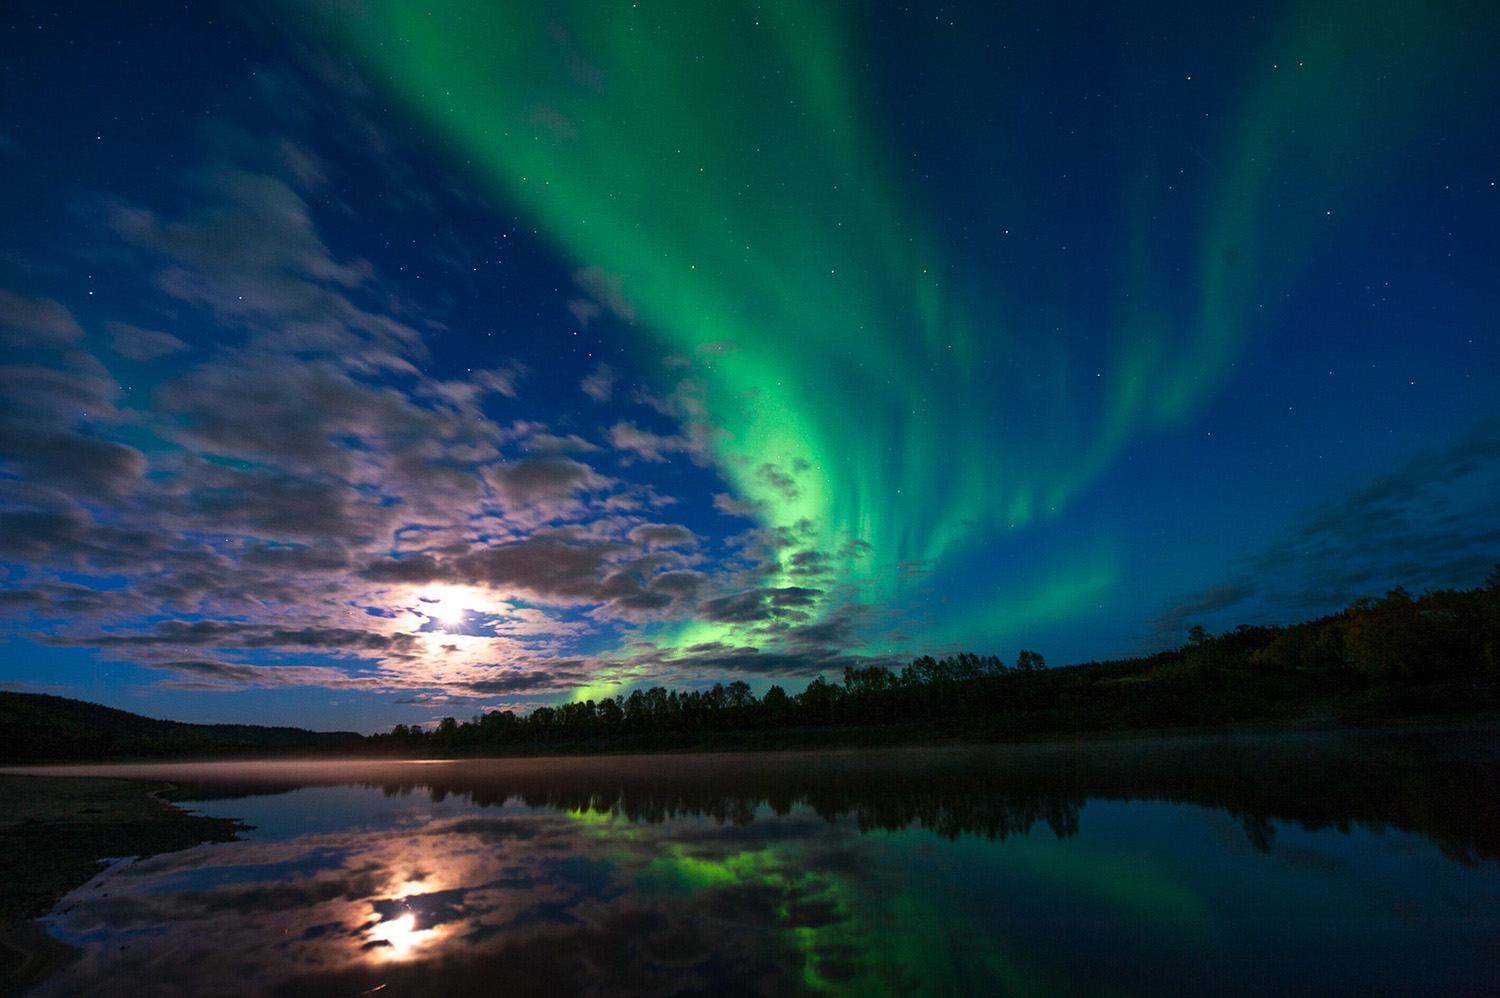 The northern light is spellbinding - and you can even get an app to see when you get to see it